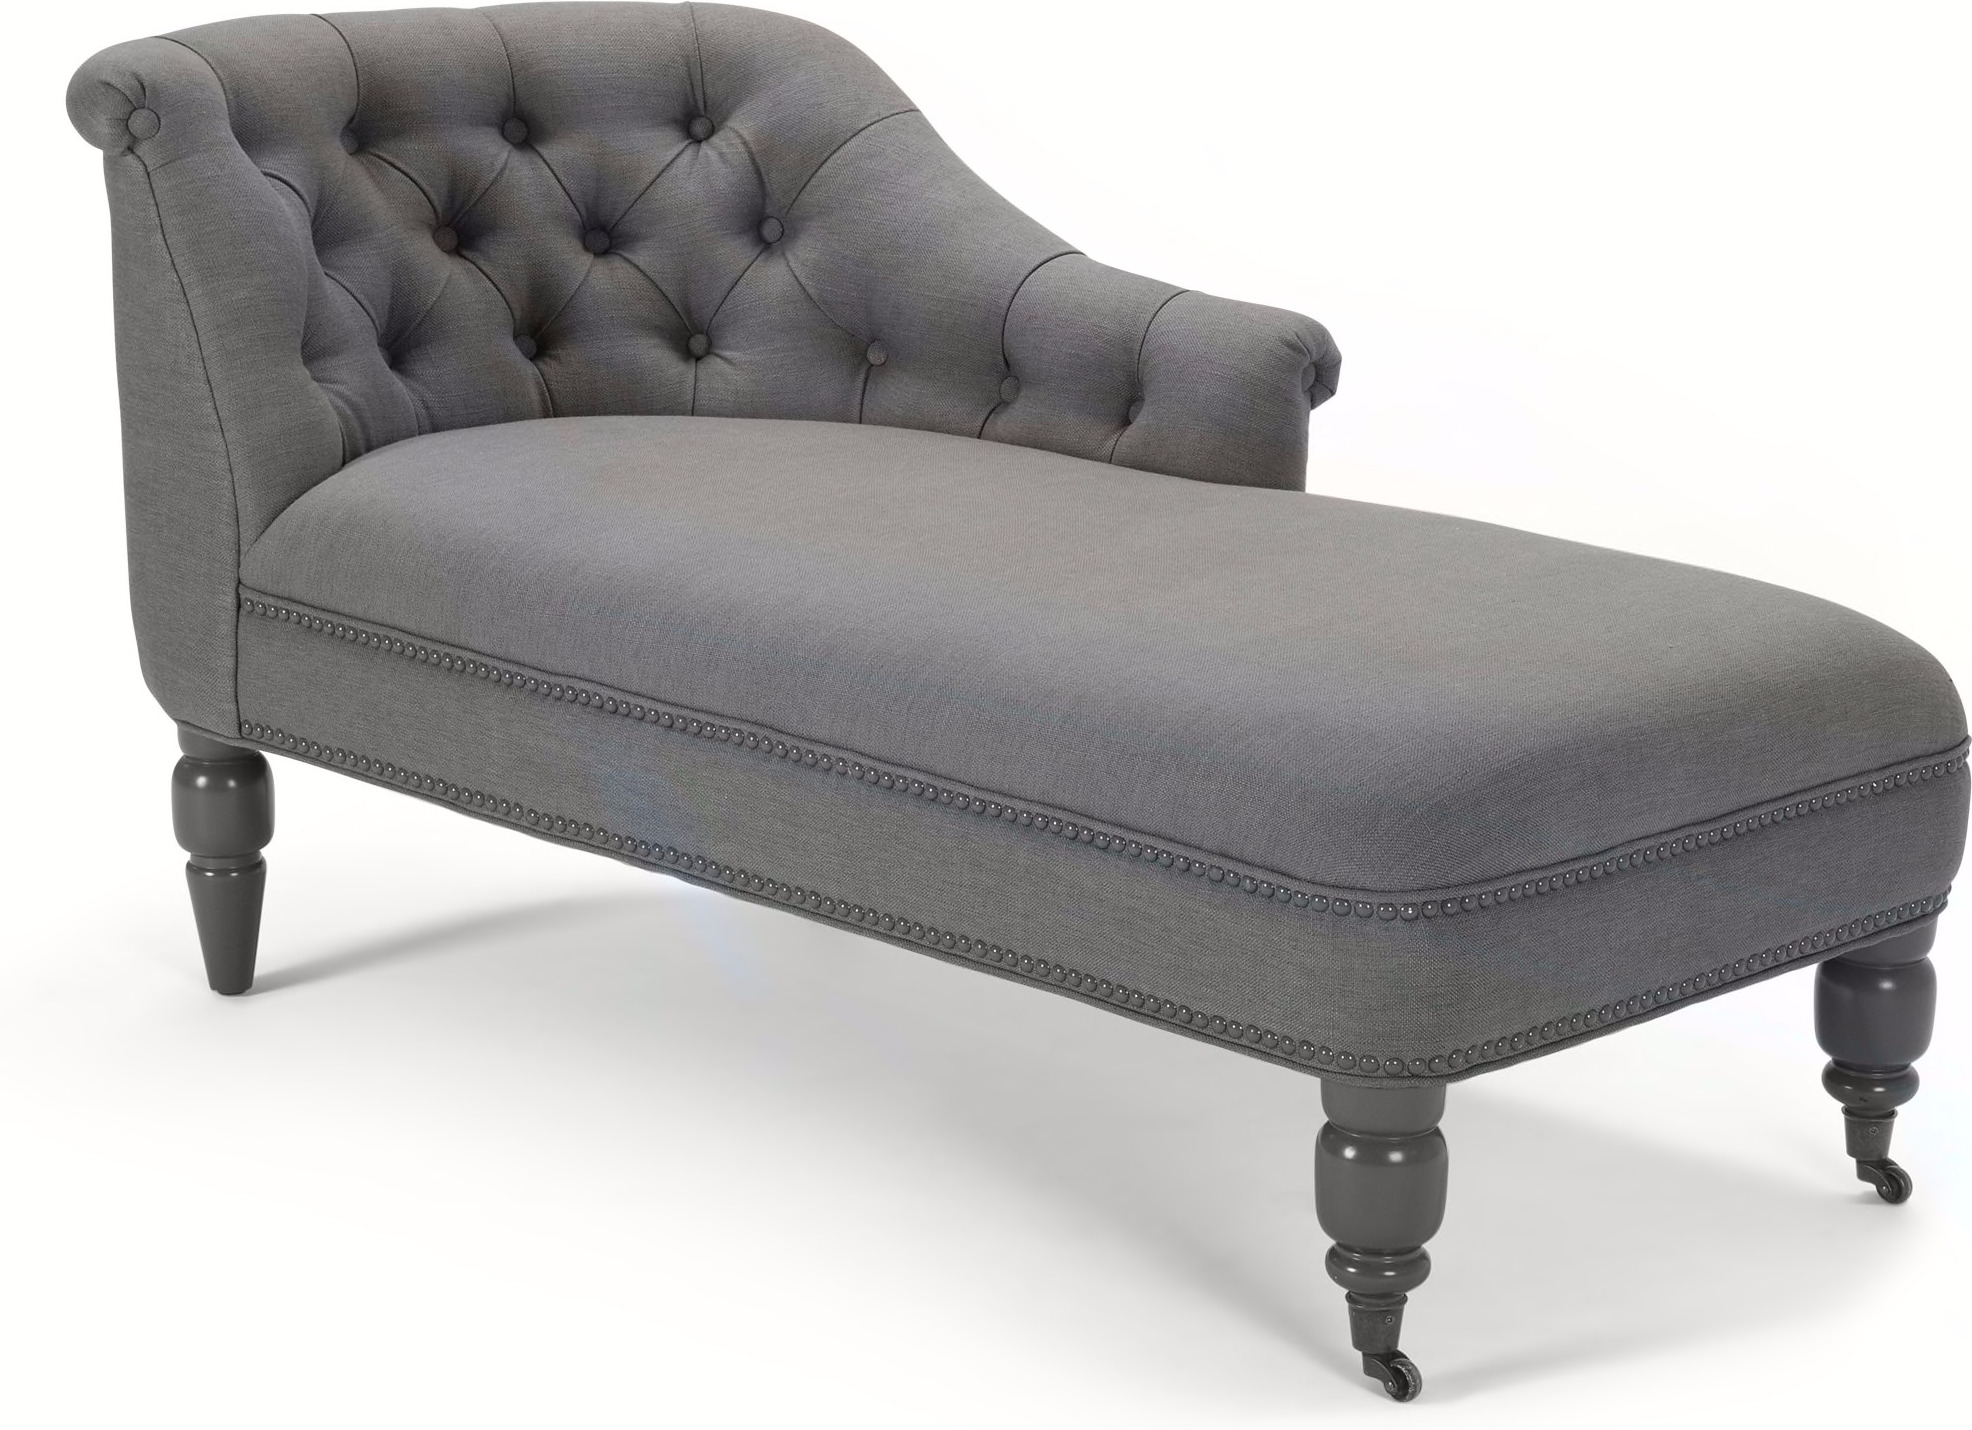 Bouji Right Hand Facing Chaise, Graphite Grey and Slate